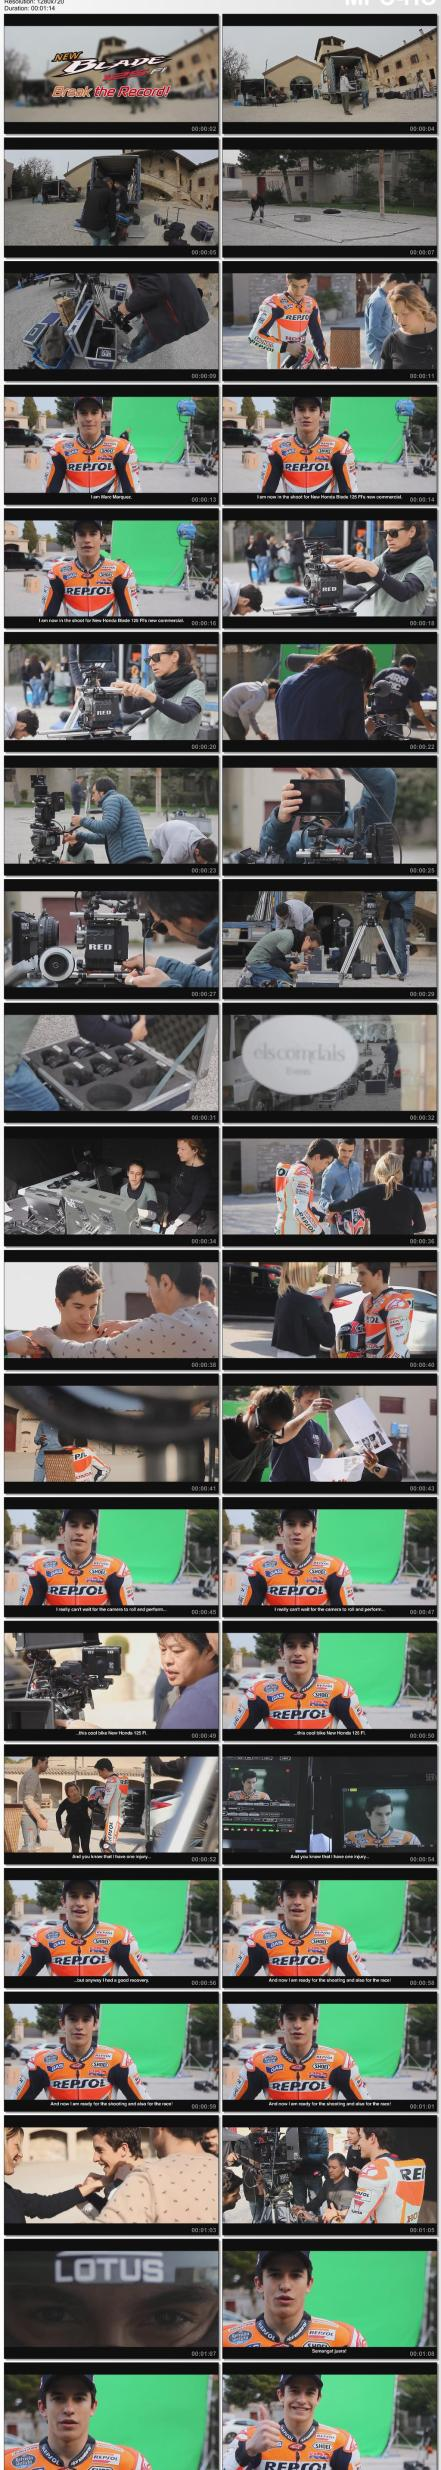 Behind The Scene TVC Honda Blade 125 FI with Marc Marquez by pertamax7.com